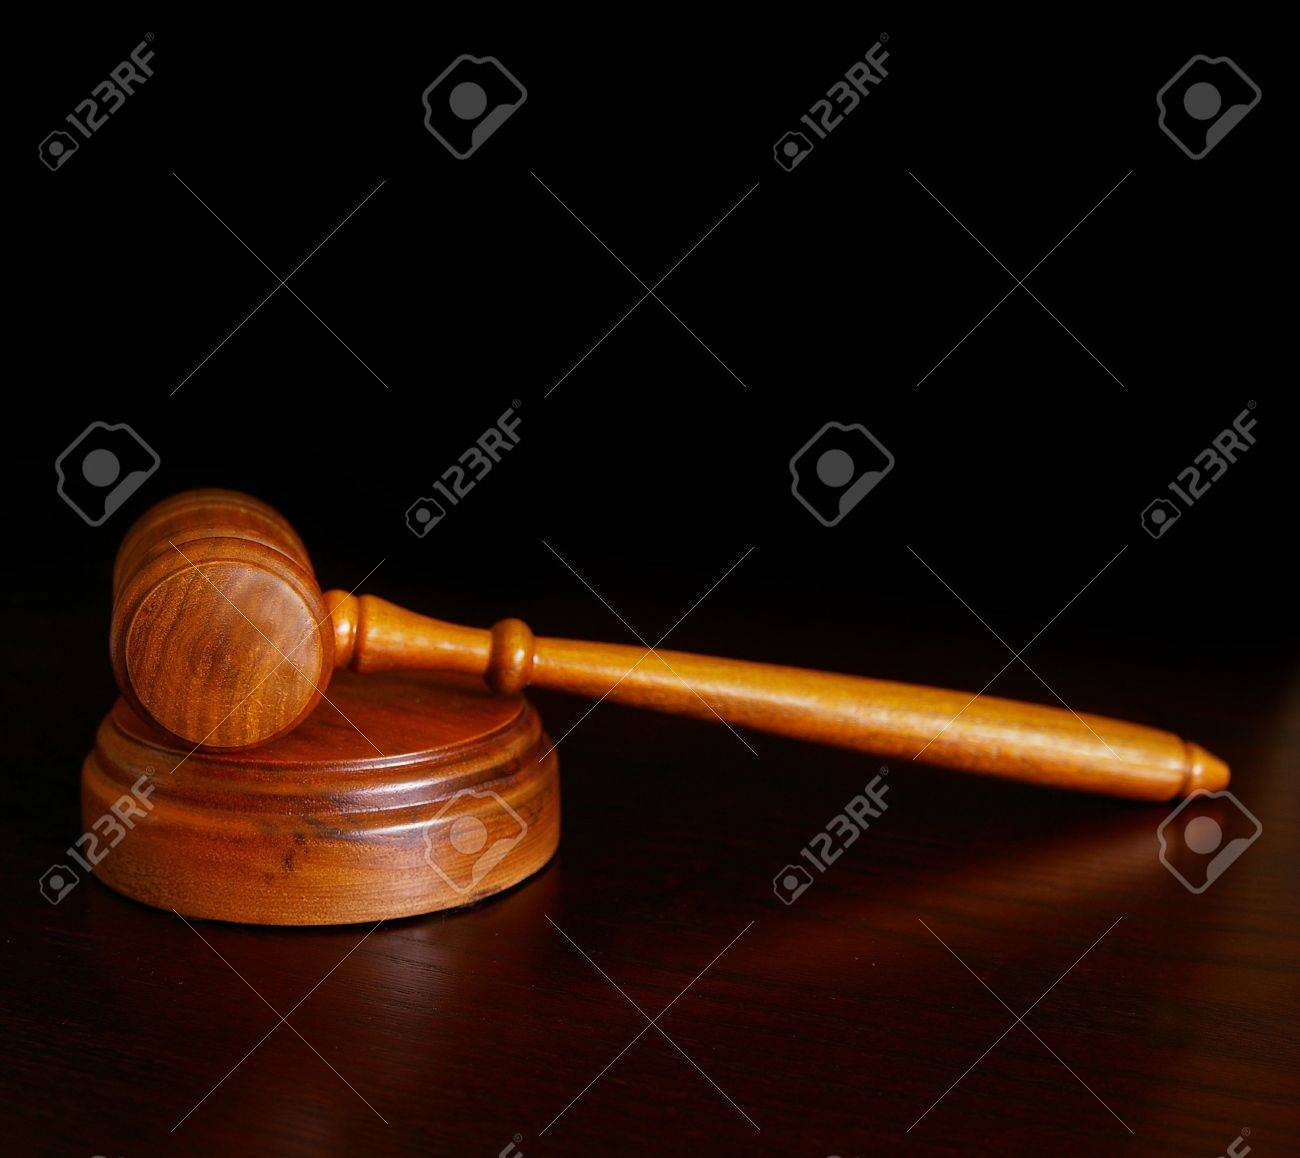 court gavel on desk over dark background stock photo picture and